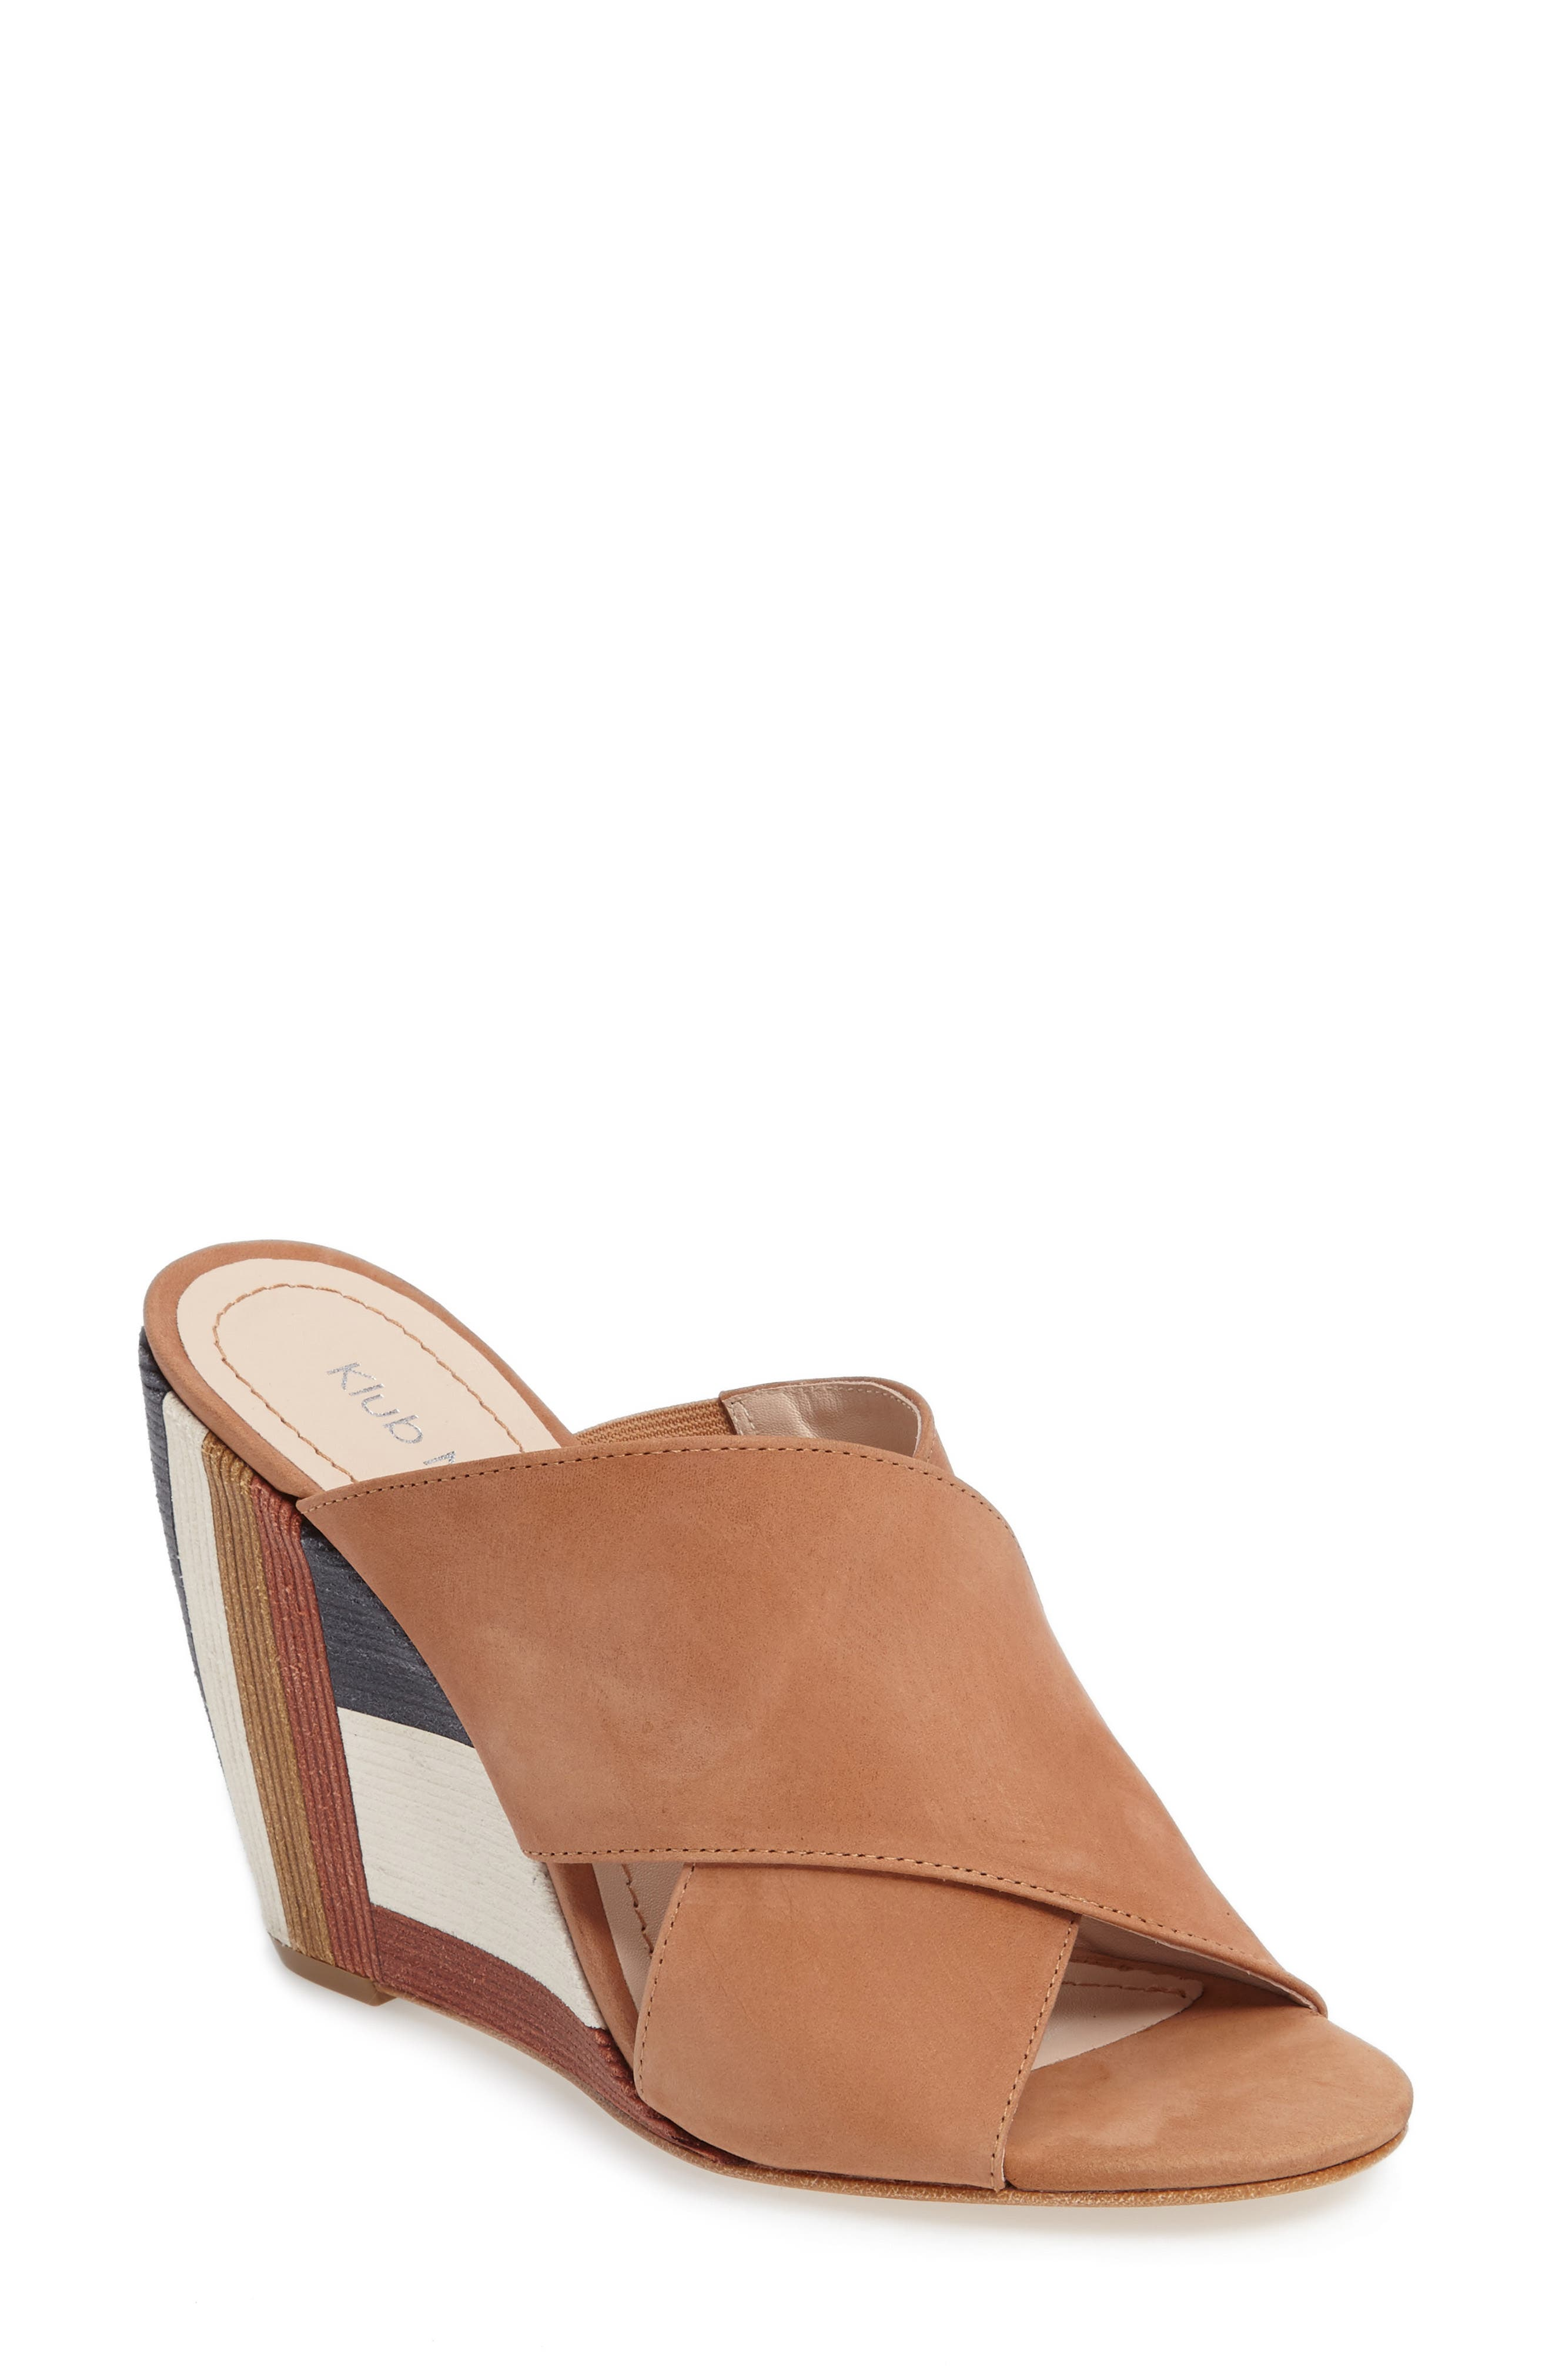 Kamille Wedge,                         Main,                         color, 250